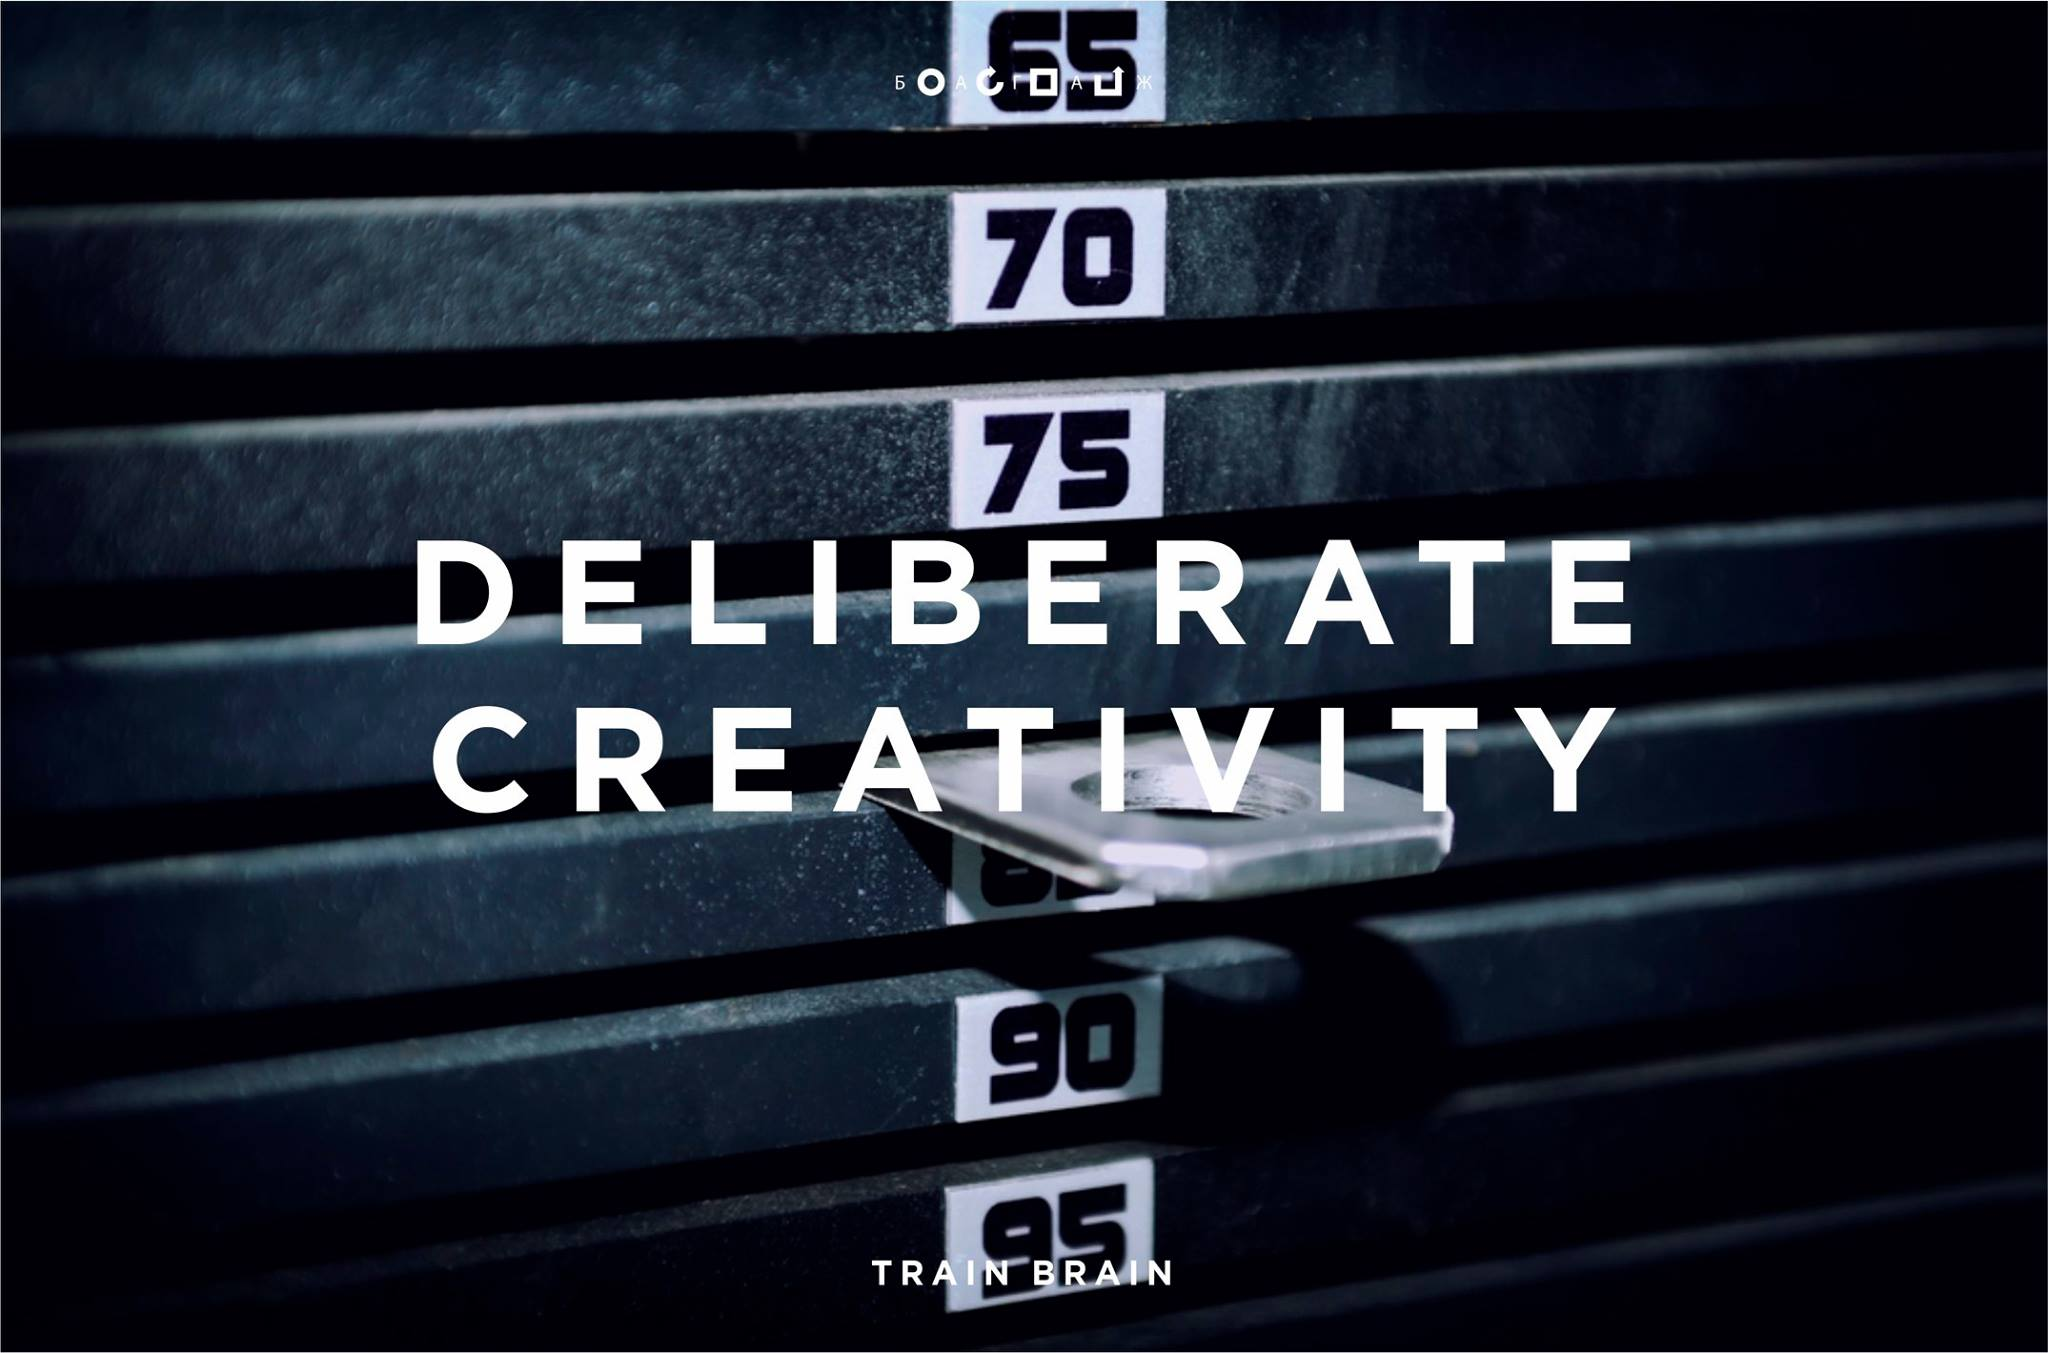 57_december_2017_DELIBERATE CREATIVITY